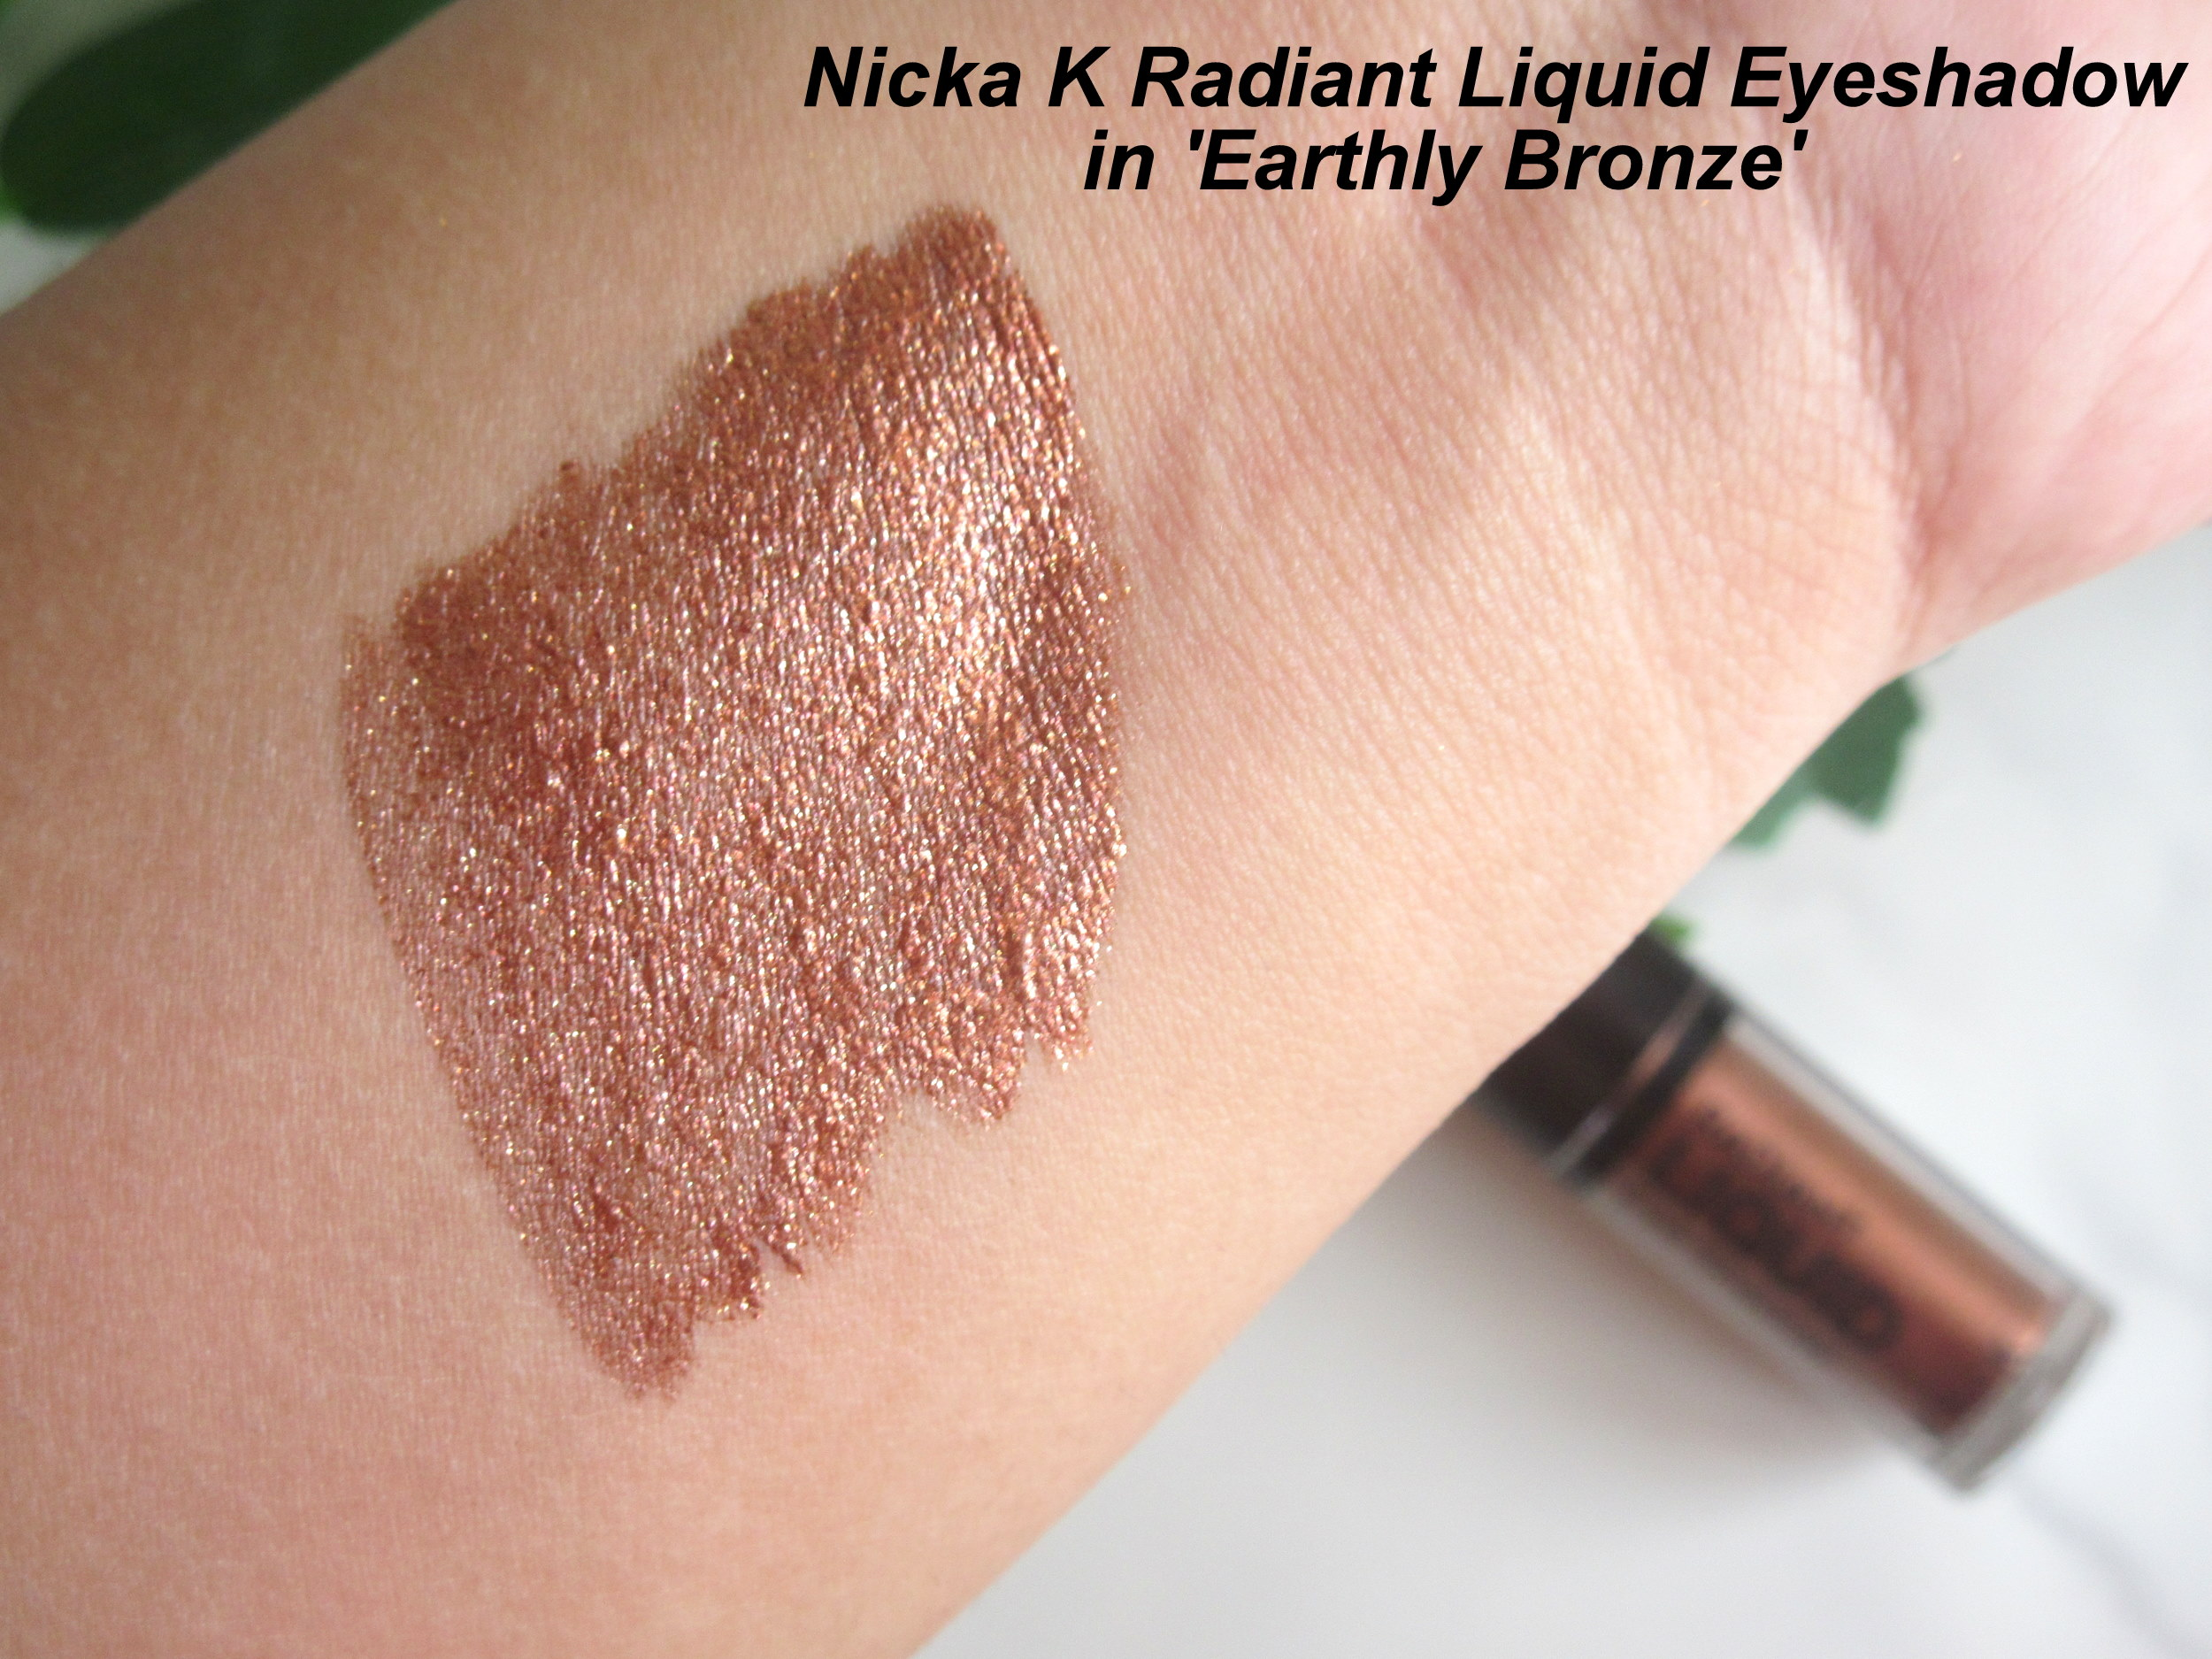 nicka k liquid eyeshadow earthly bronze,